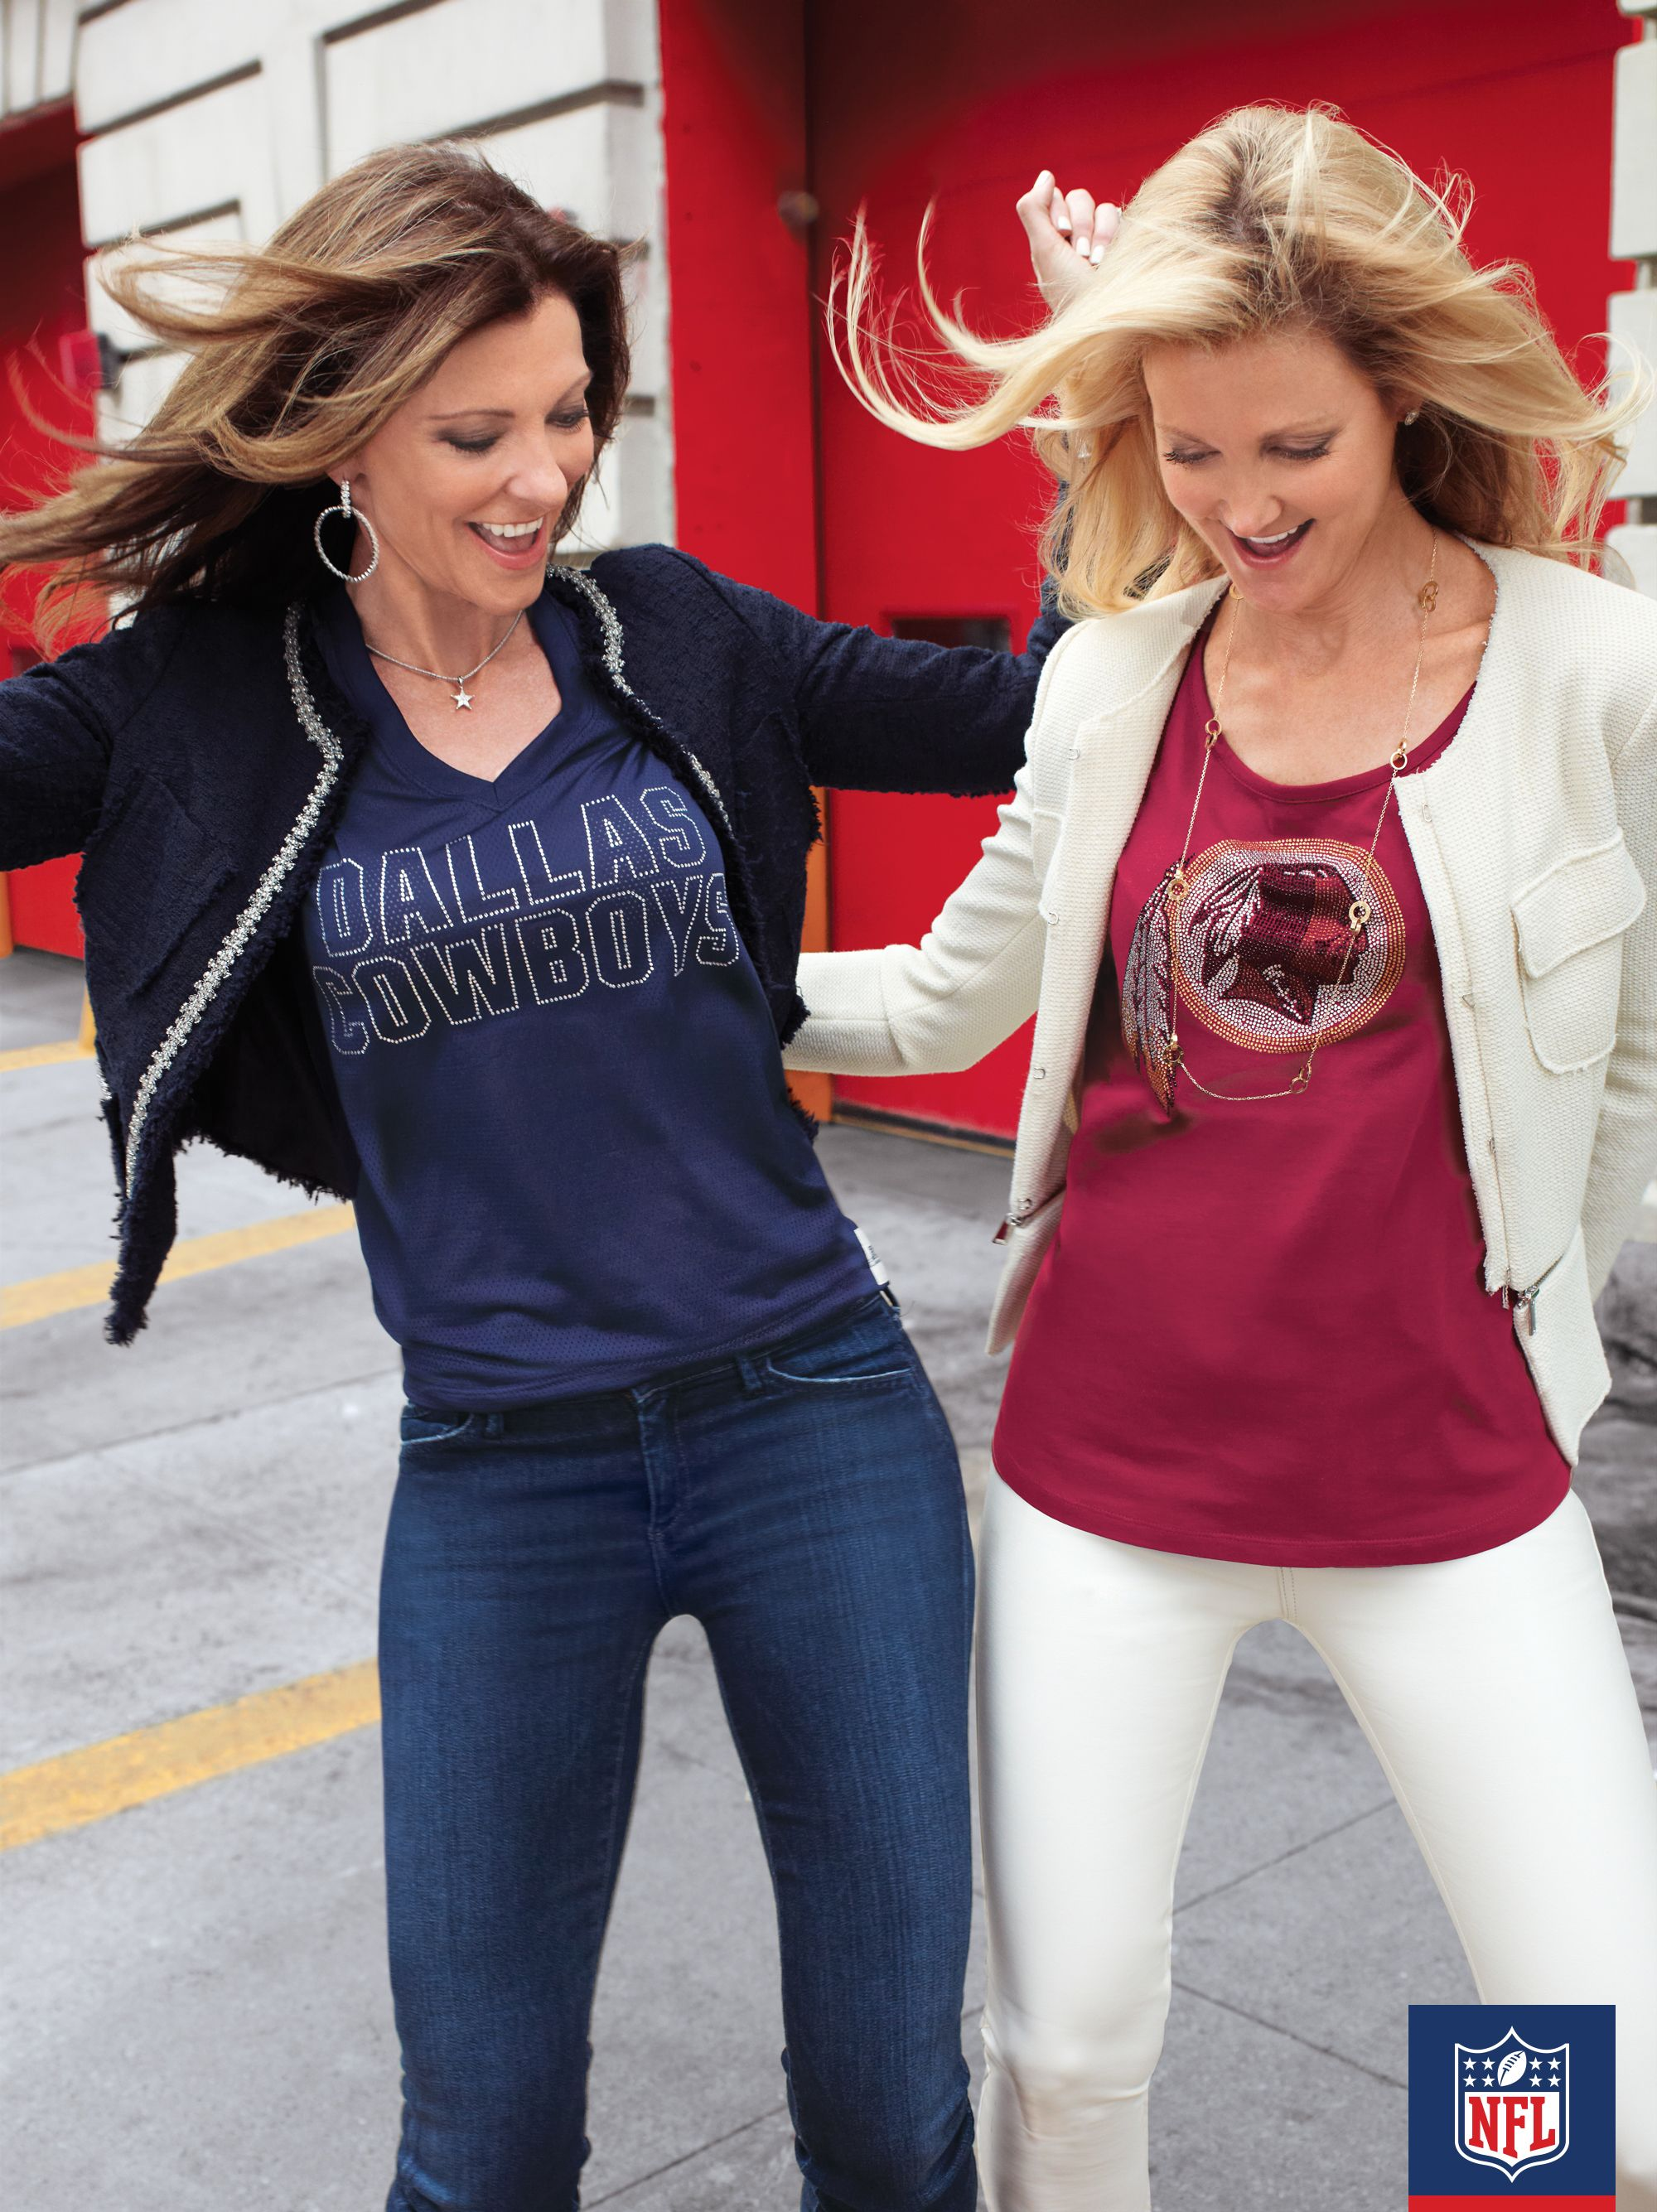 #NFLFanStyle #contest Don't let a little rivalry get in your way. Both Tanya Snyder and Charlotte Anderson look super-sharp in their Dallas and Washington tees.